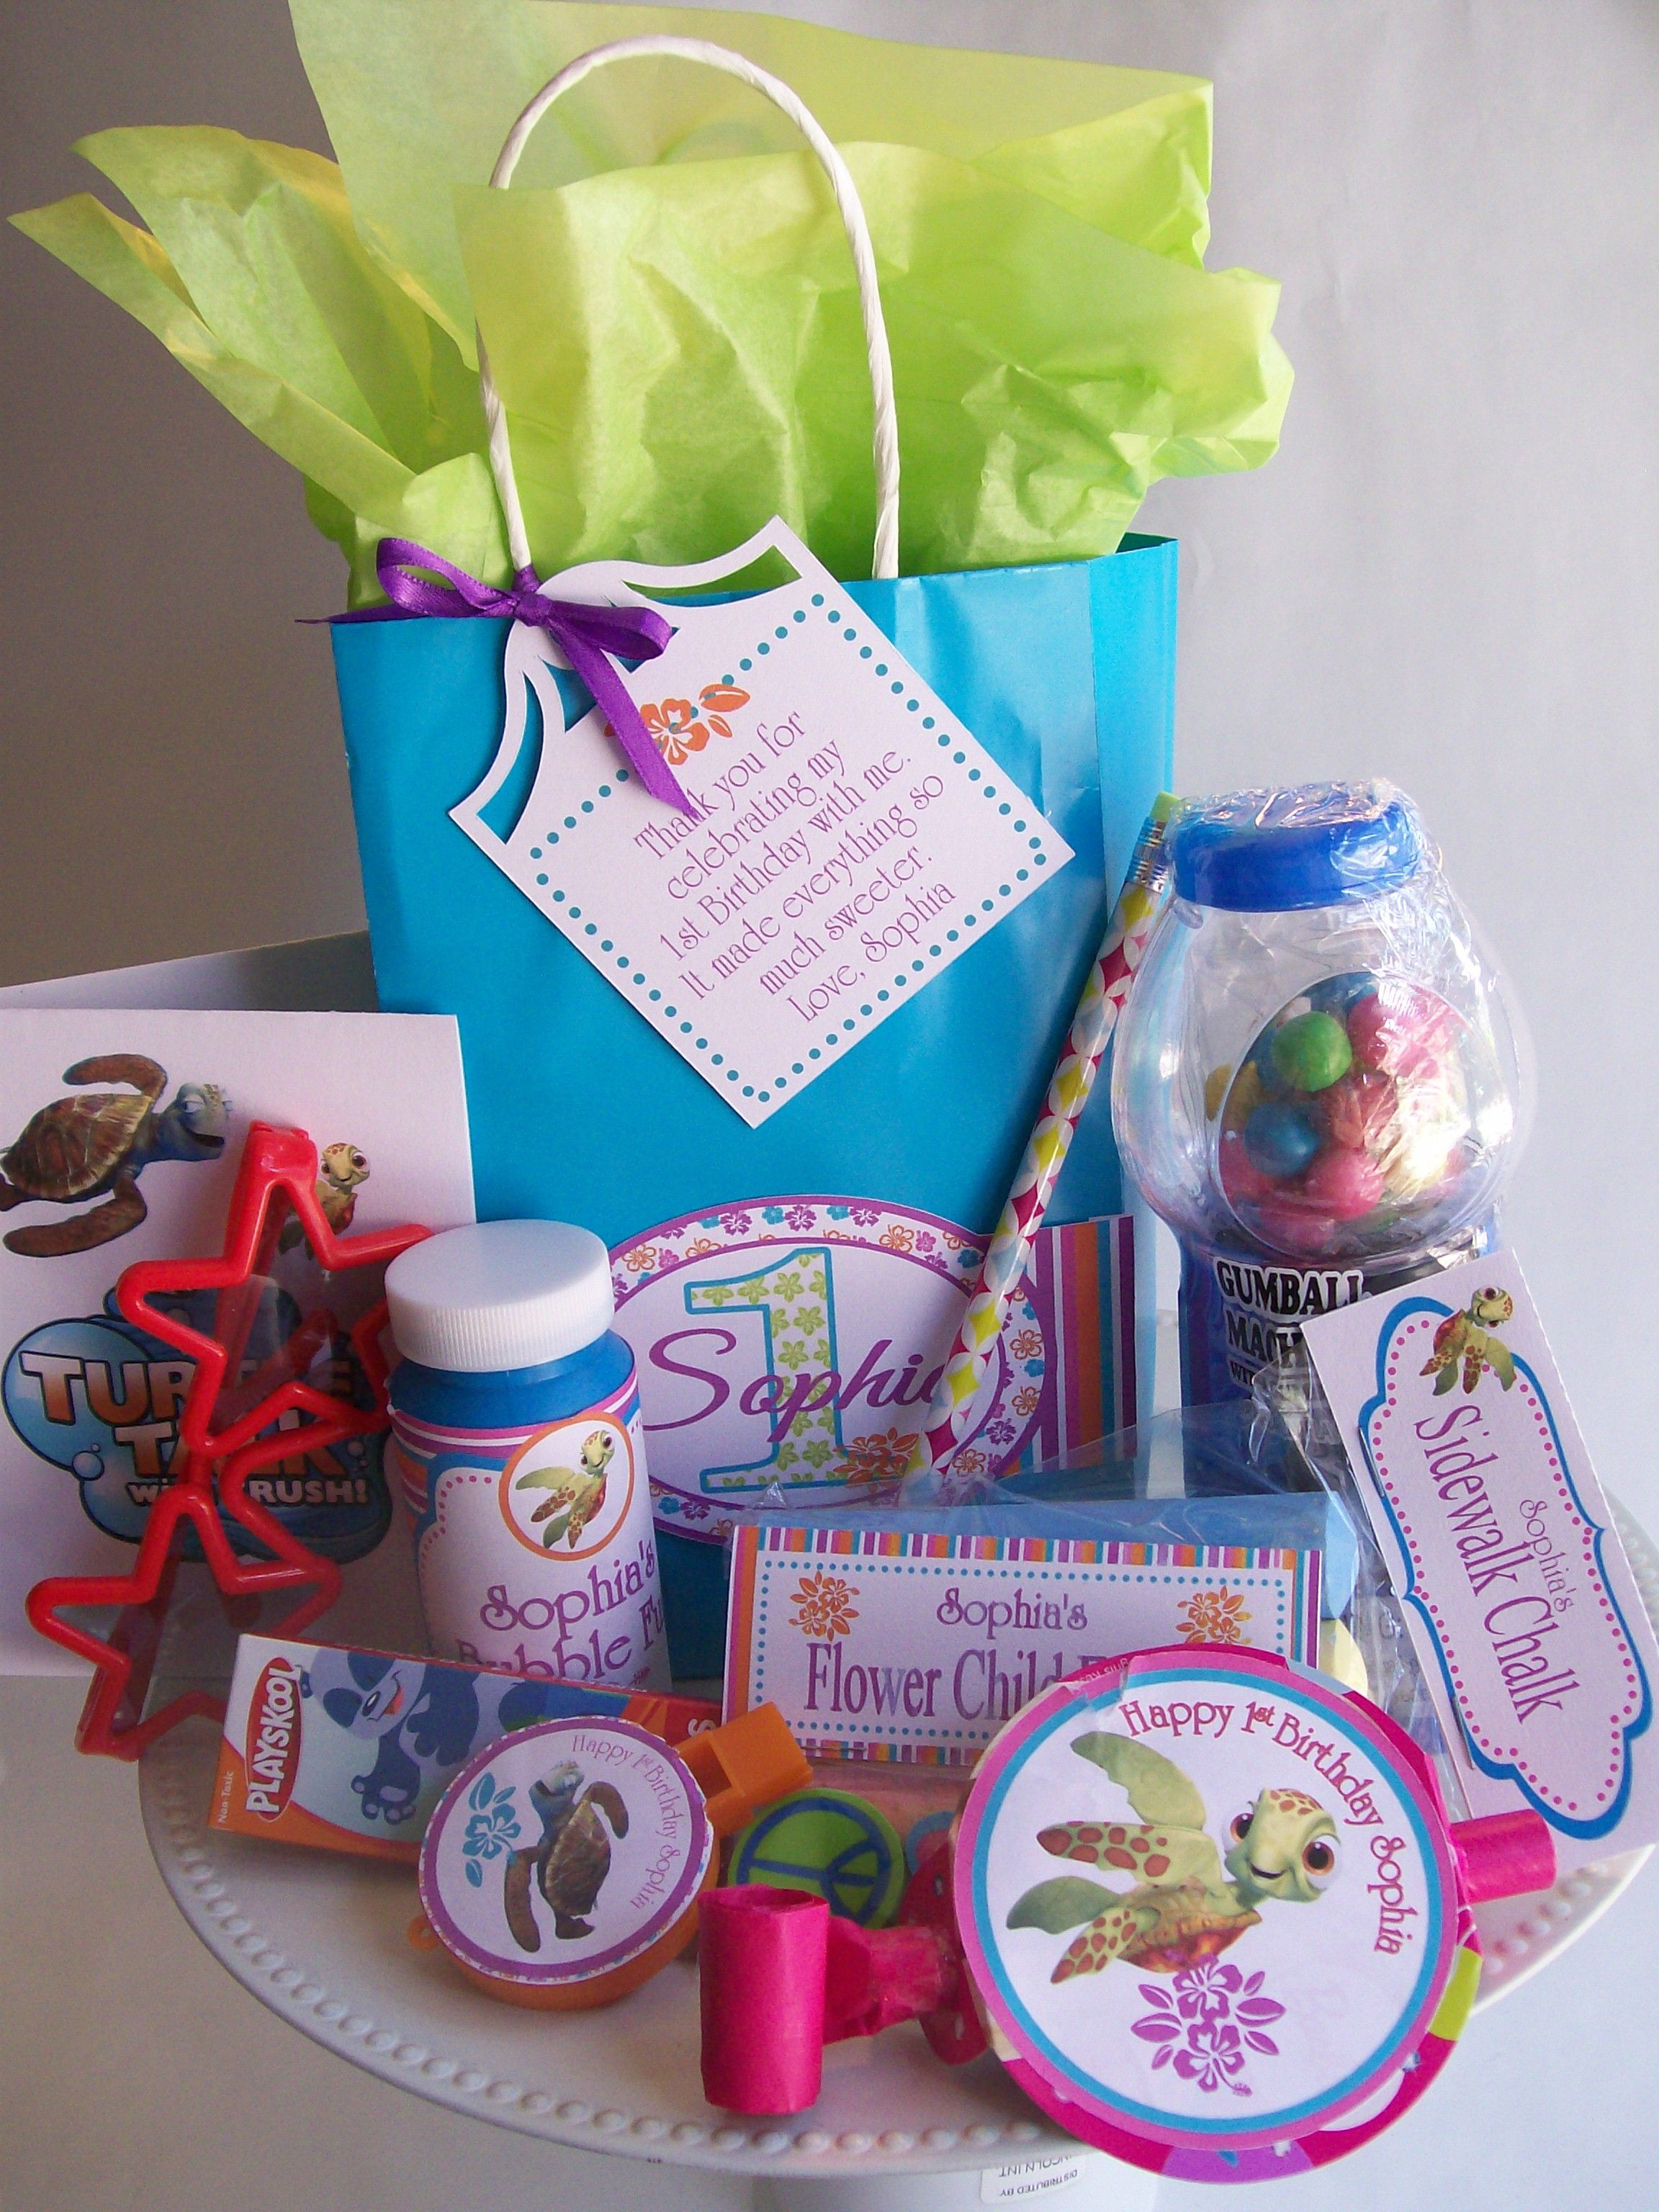 Best ideas about First Birthday Party Favors . Save or Pin 1st Birthday Party Thank you for ing to my party favor Now.